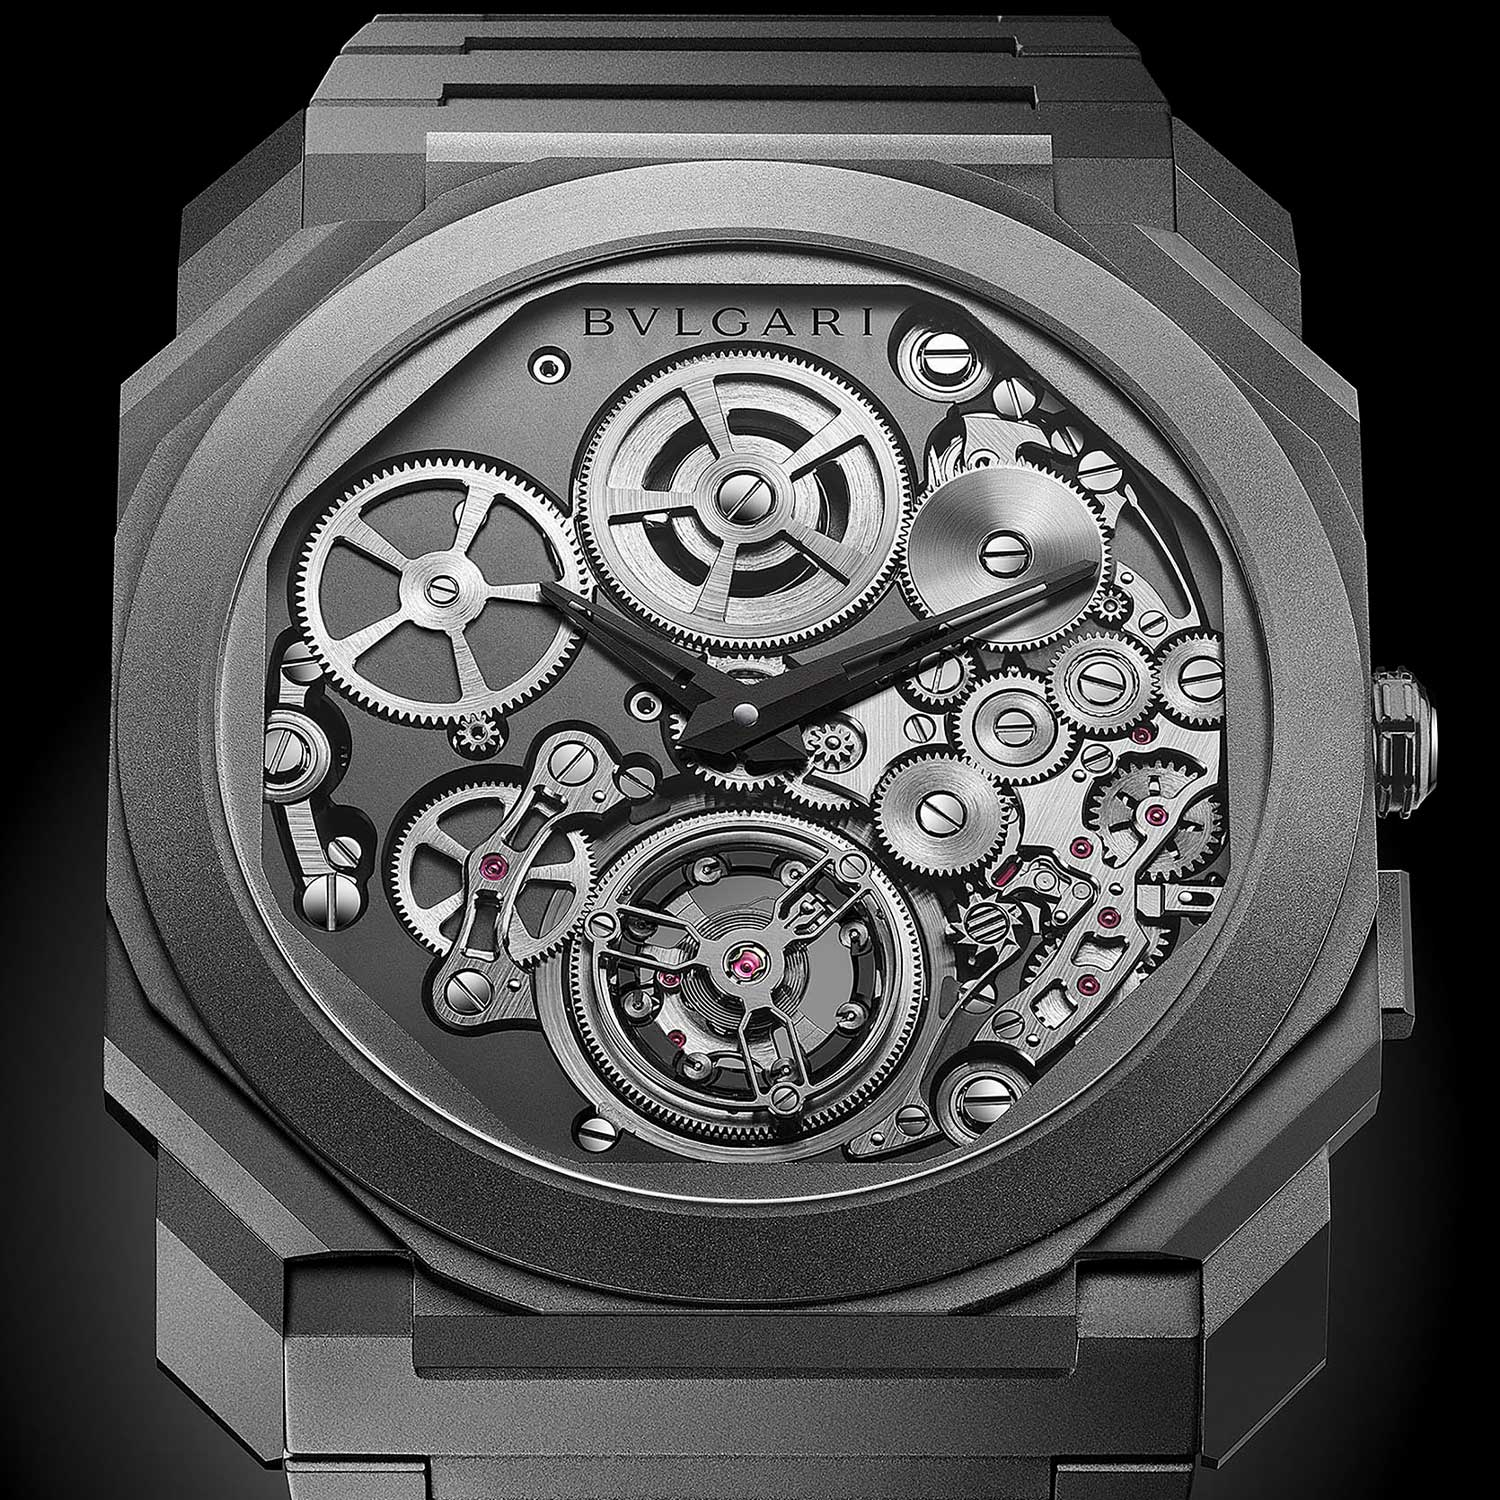 2018: Octo Finissimo Tourbillon Automatic Bvlgari introduces a new breakthrough on the front of extreme slenderness. At just 3.95mm thick, Octo Finissimo Tourbillon Automatic claims a new watch industry record for the fourth time. An automatic version of the tourbillon caliber, the BVL 288, introduces a bold new design for Bvlgari — a peripheral winding rotor, allowing one to view the movement in its entirety with the benefit of automatic winding.